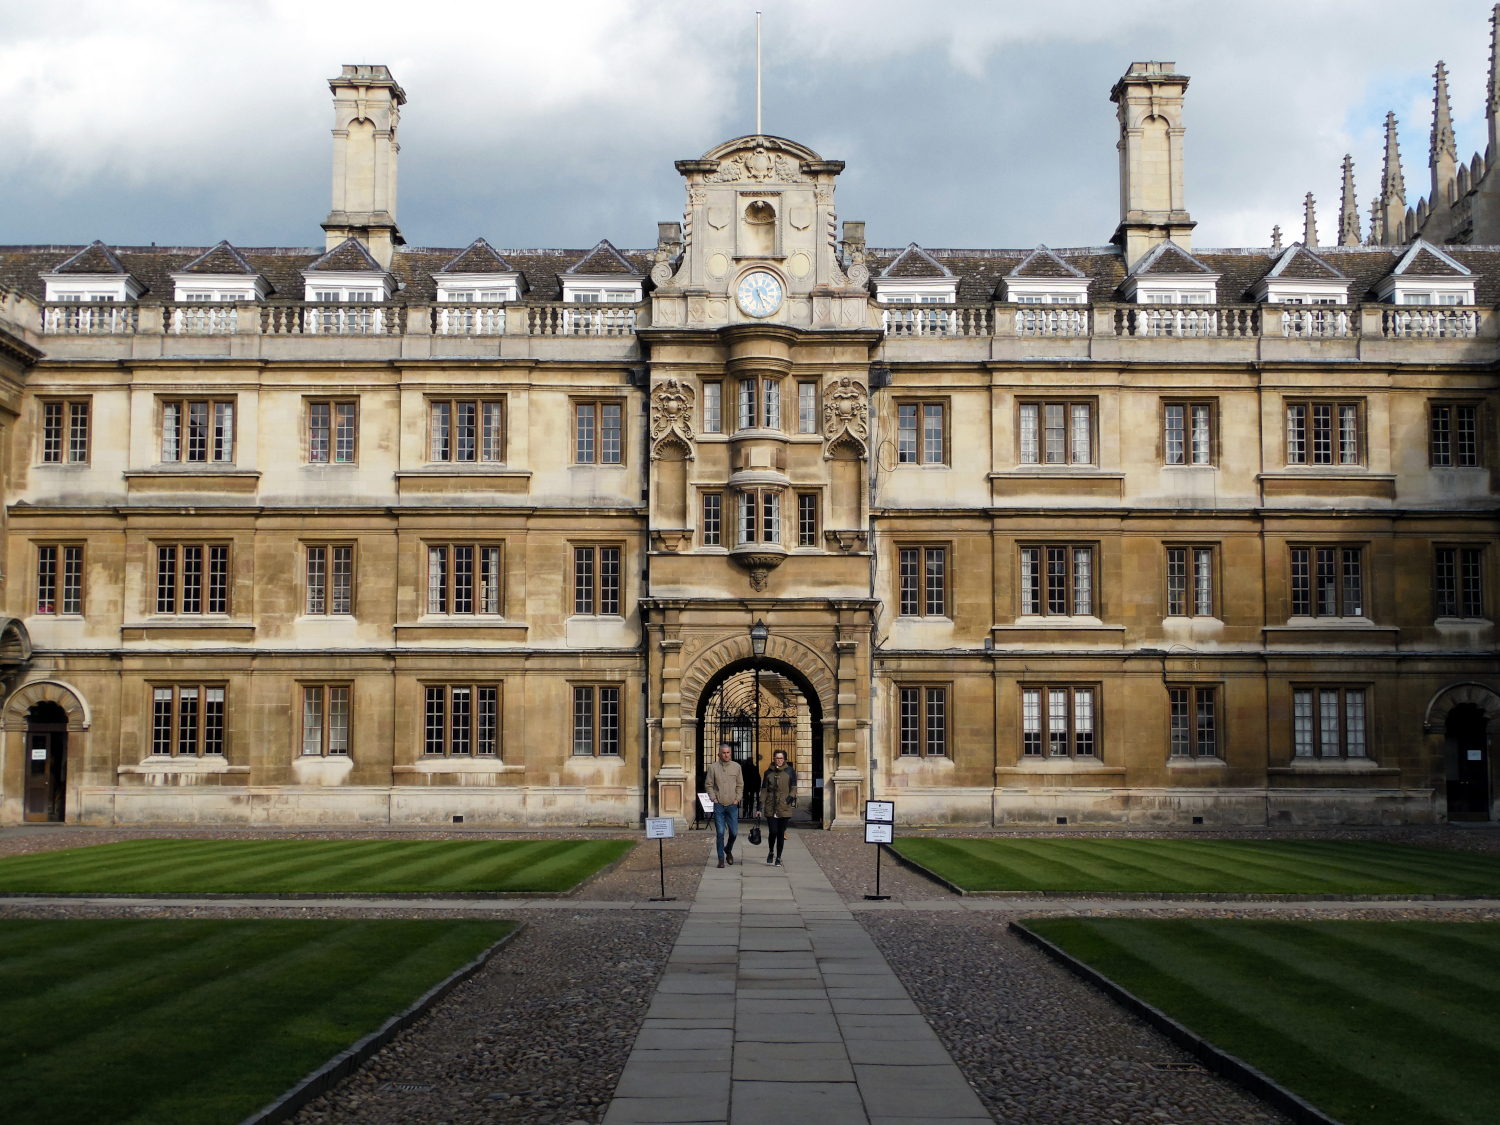 Clare College, Cambridge